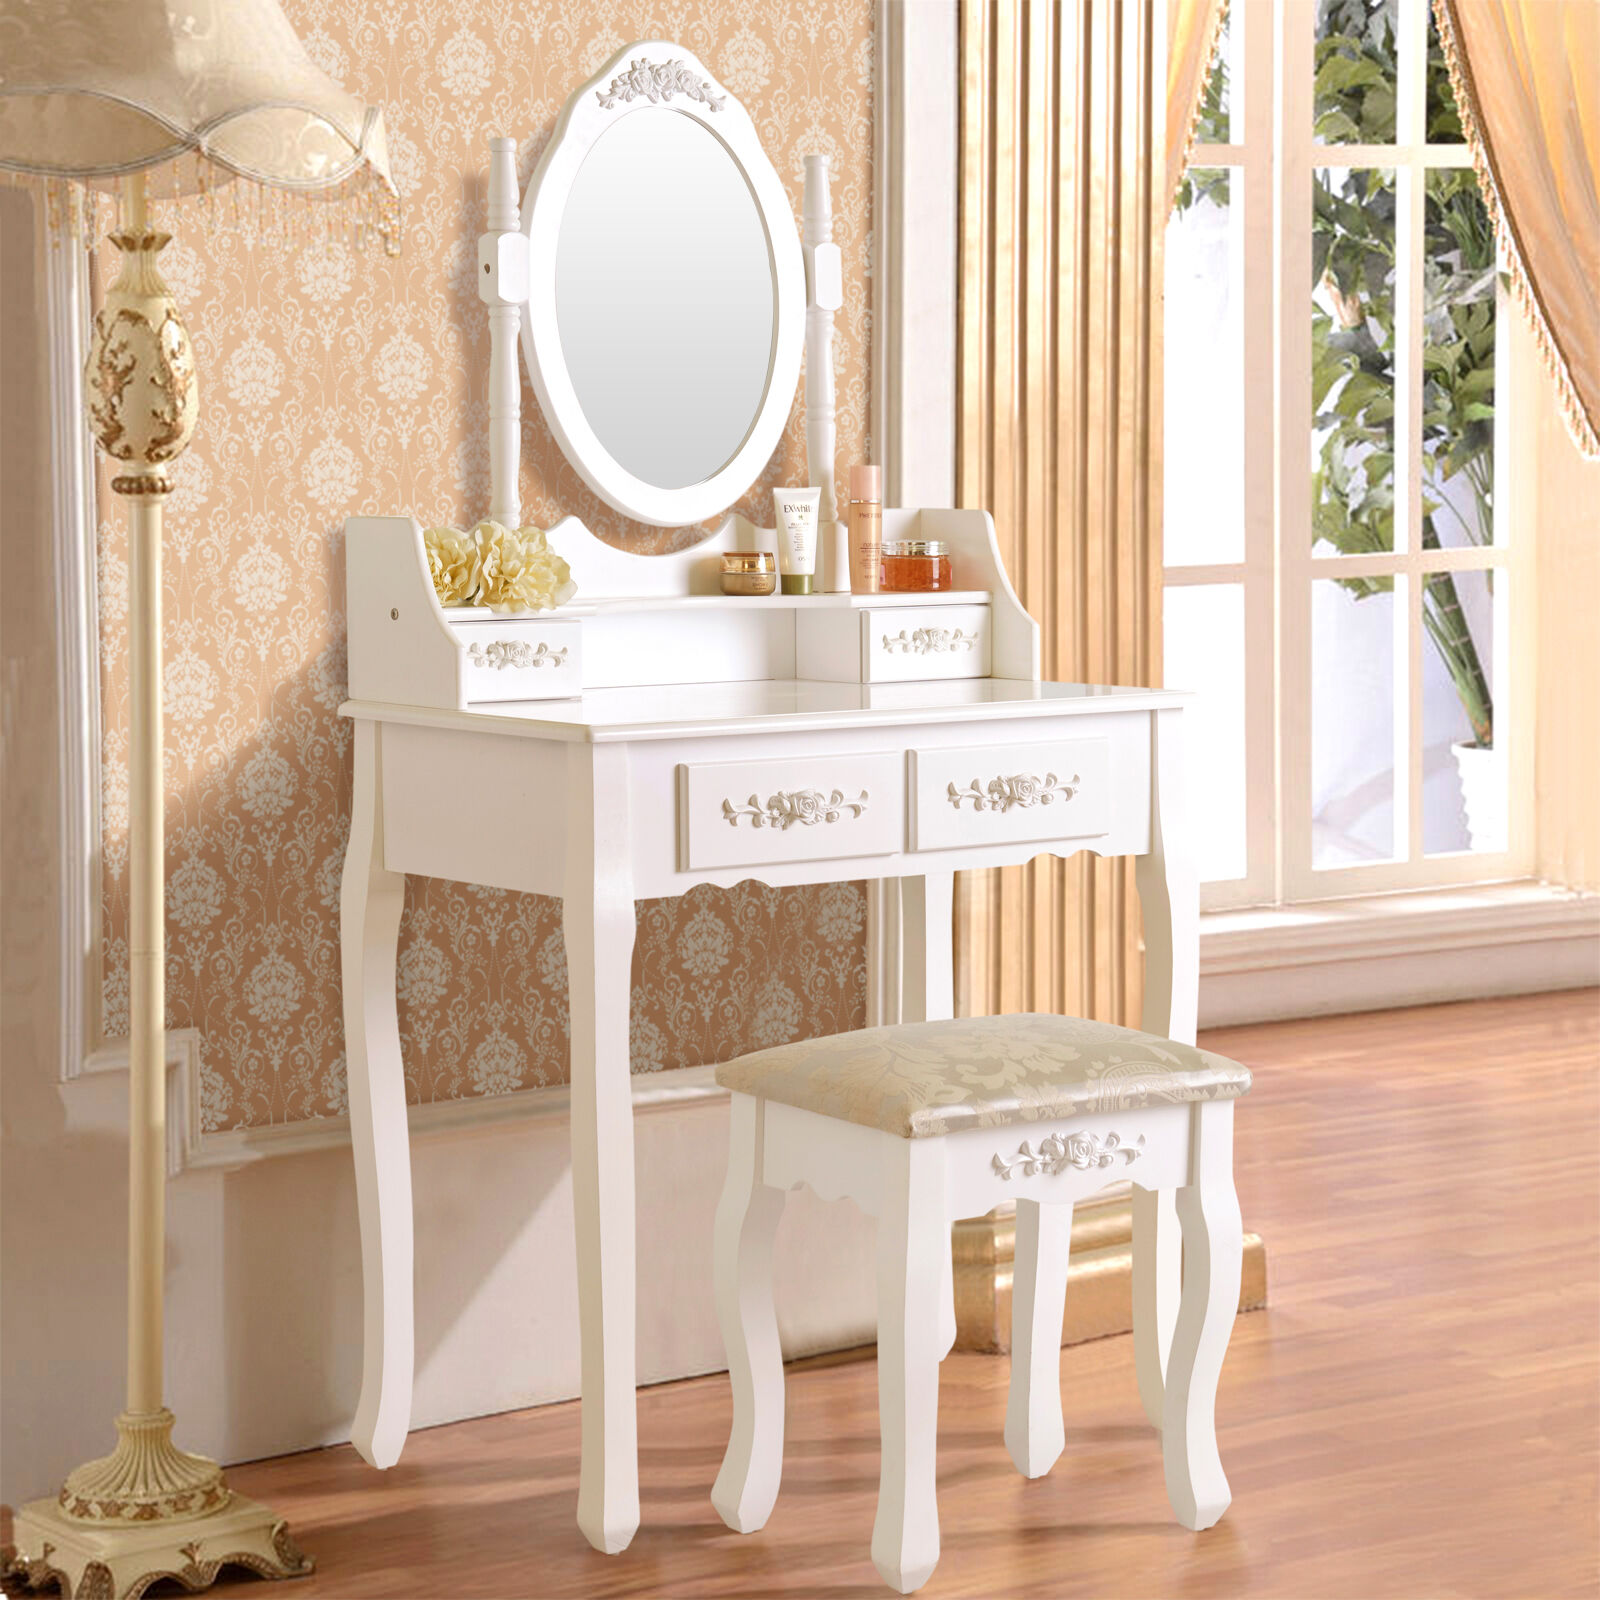 White Vanity Makeup Dressing Table Set With Stool 4 Drawer U0026 Mirror Wood  Desk